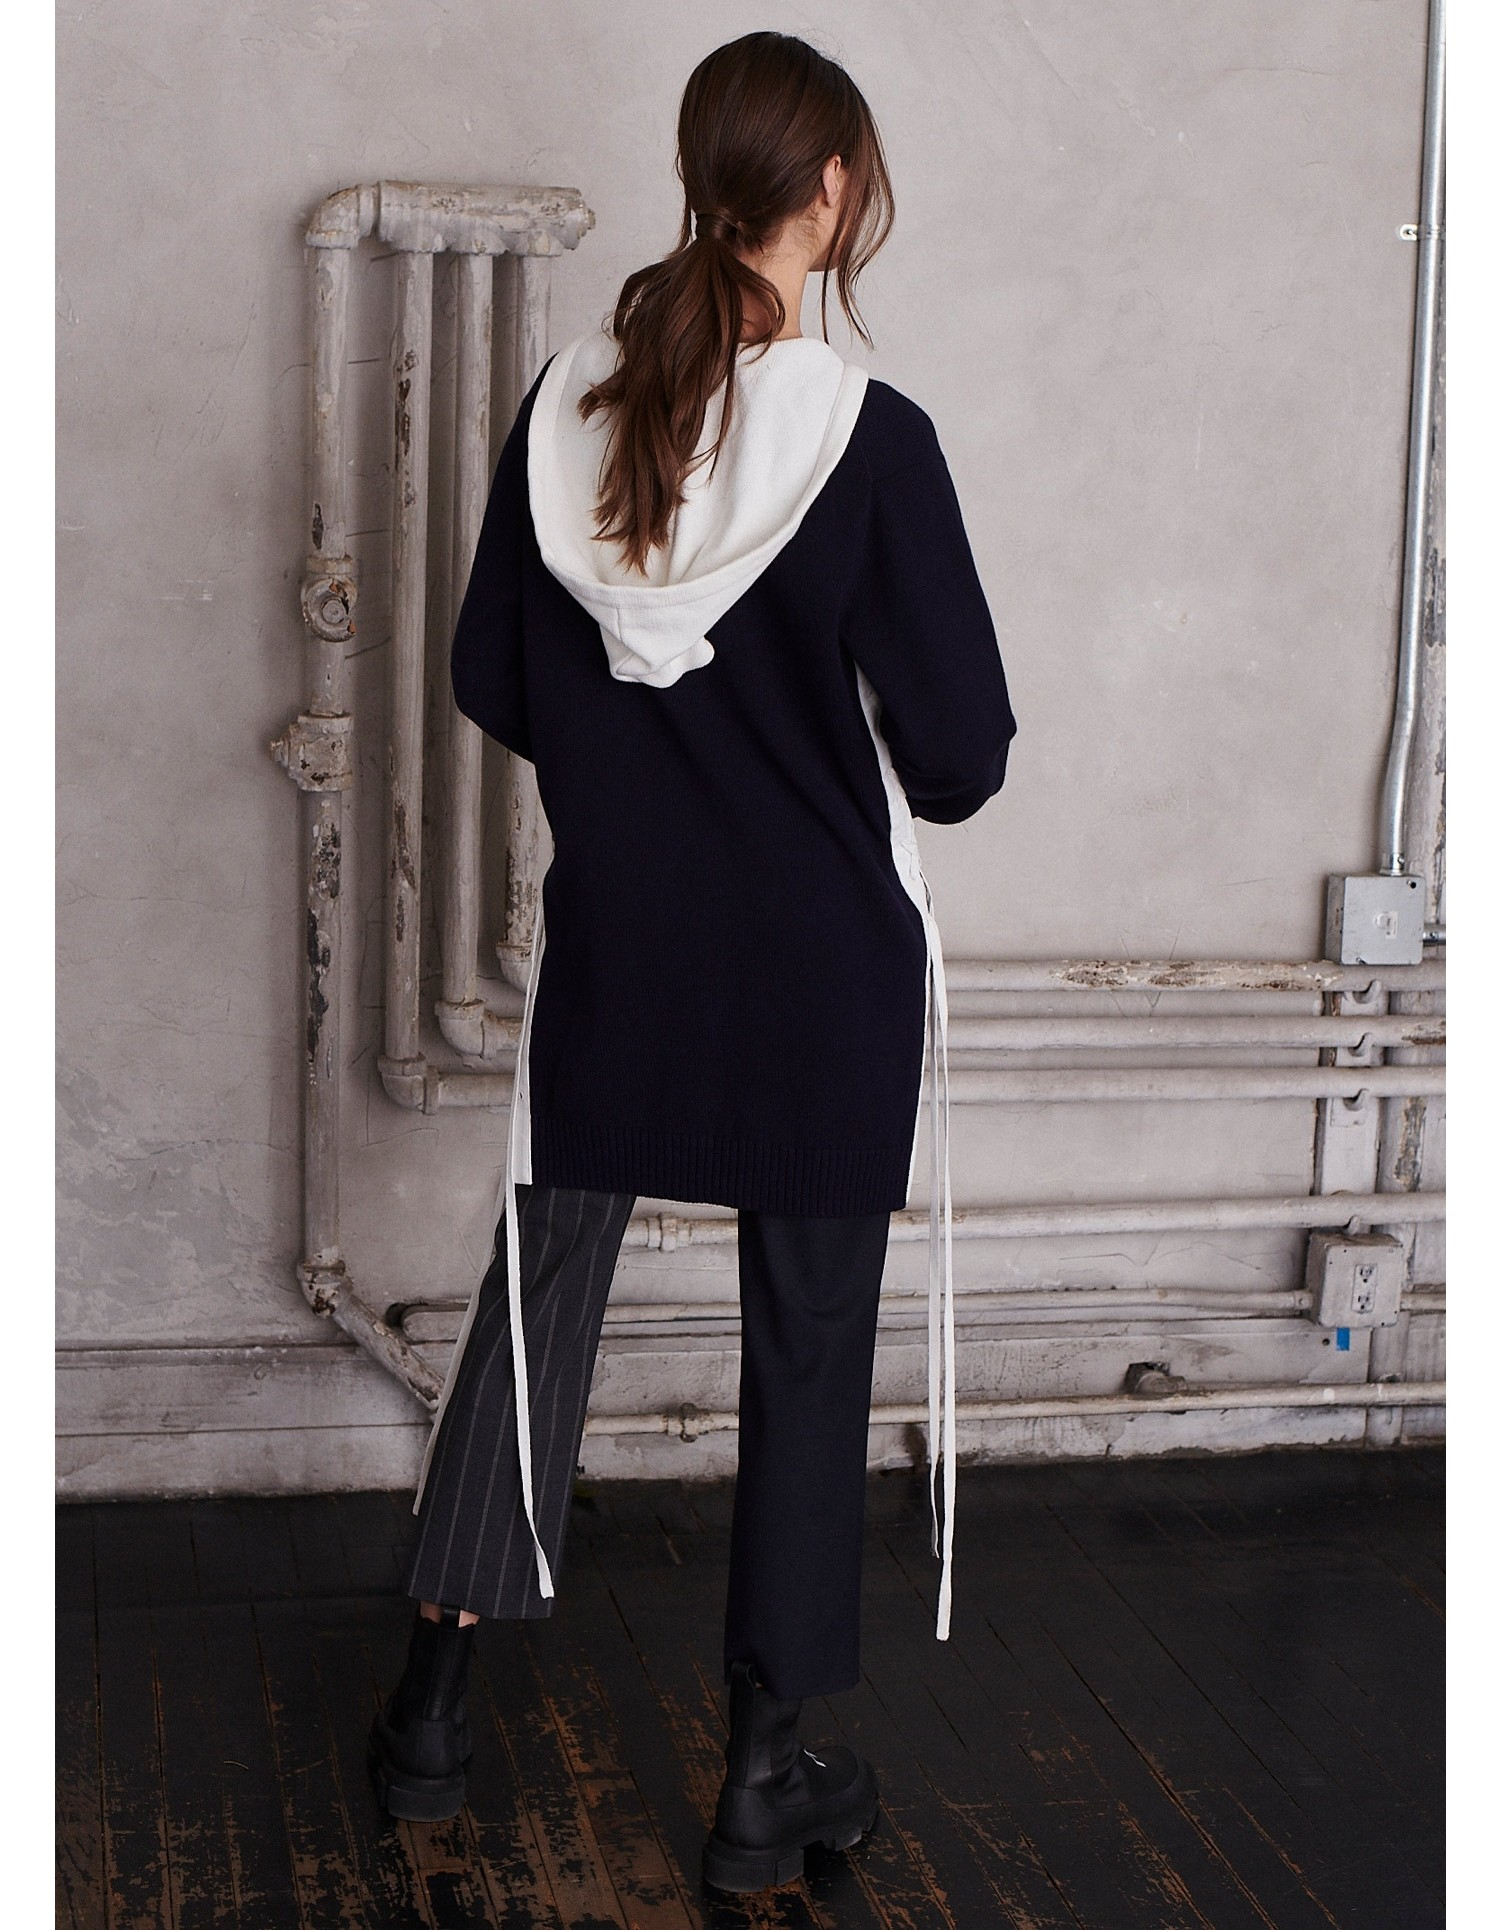 MONSE Hooded Lace Up Cardigan on Model Back View